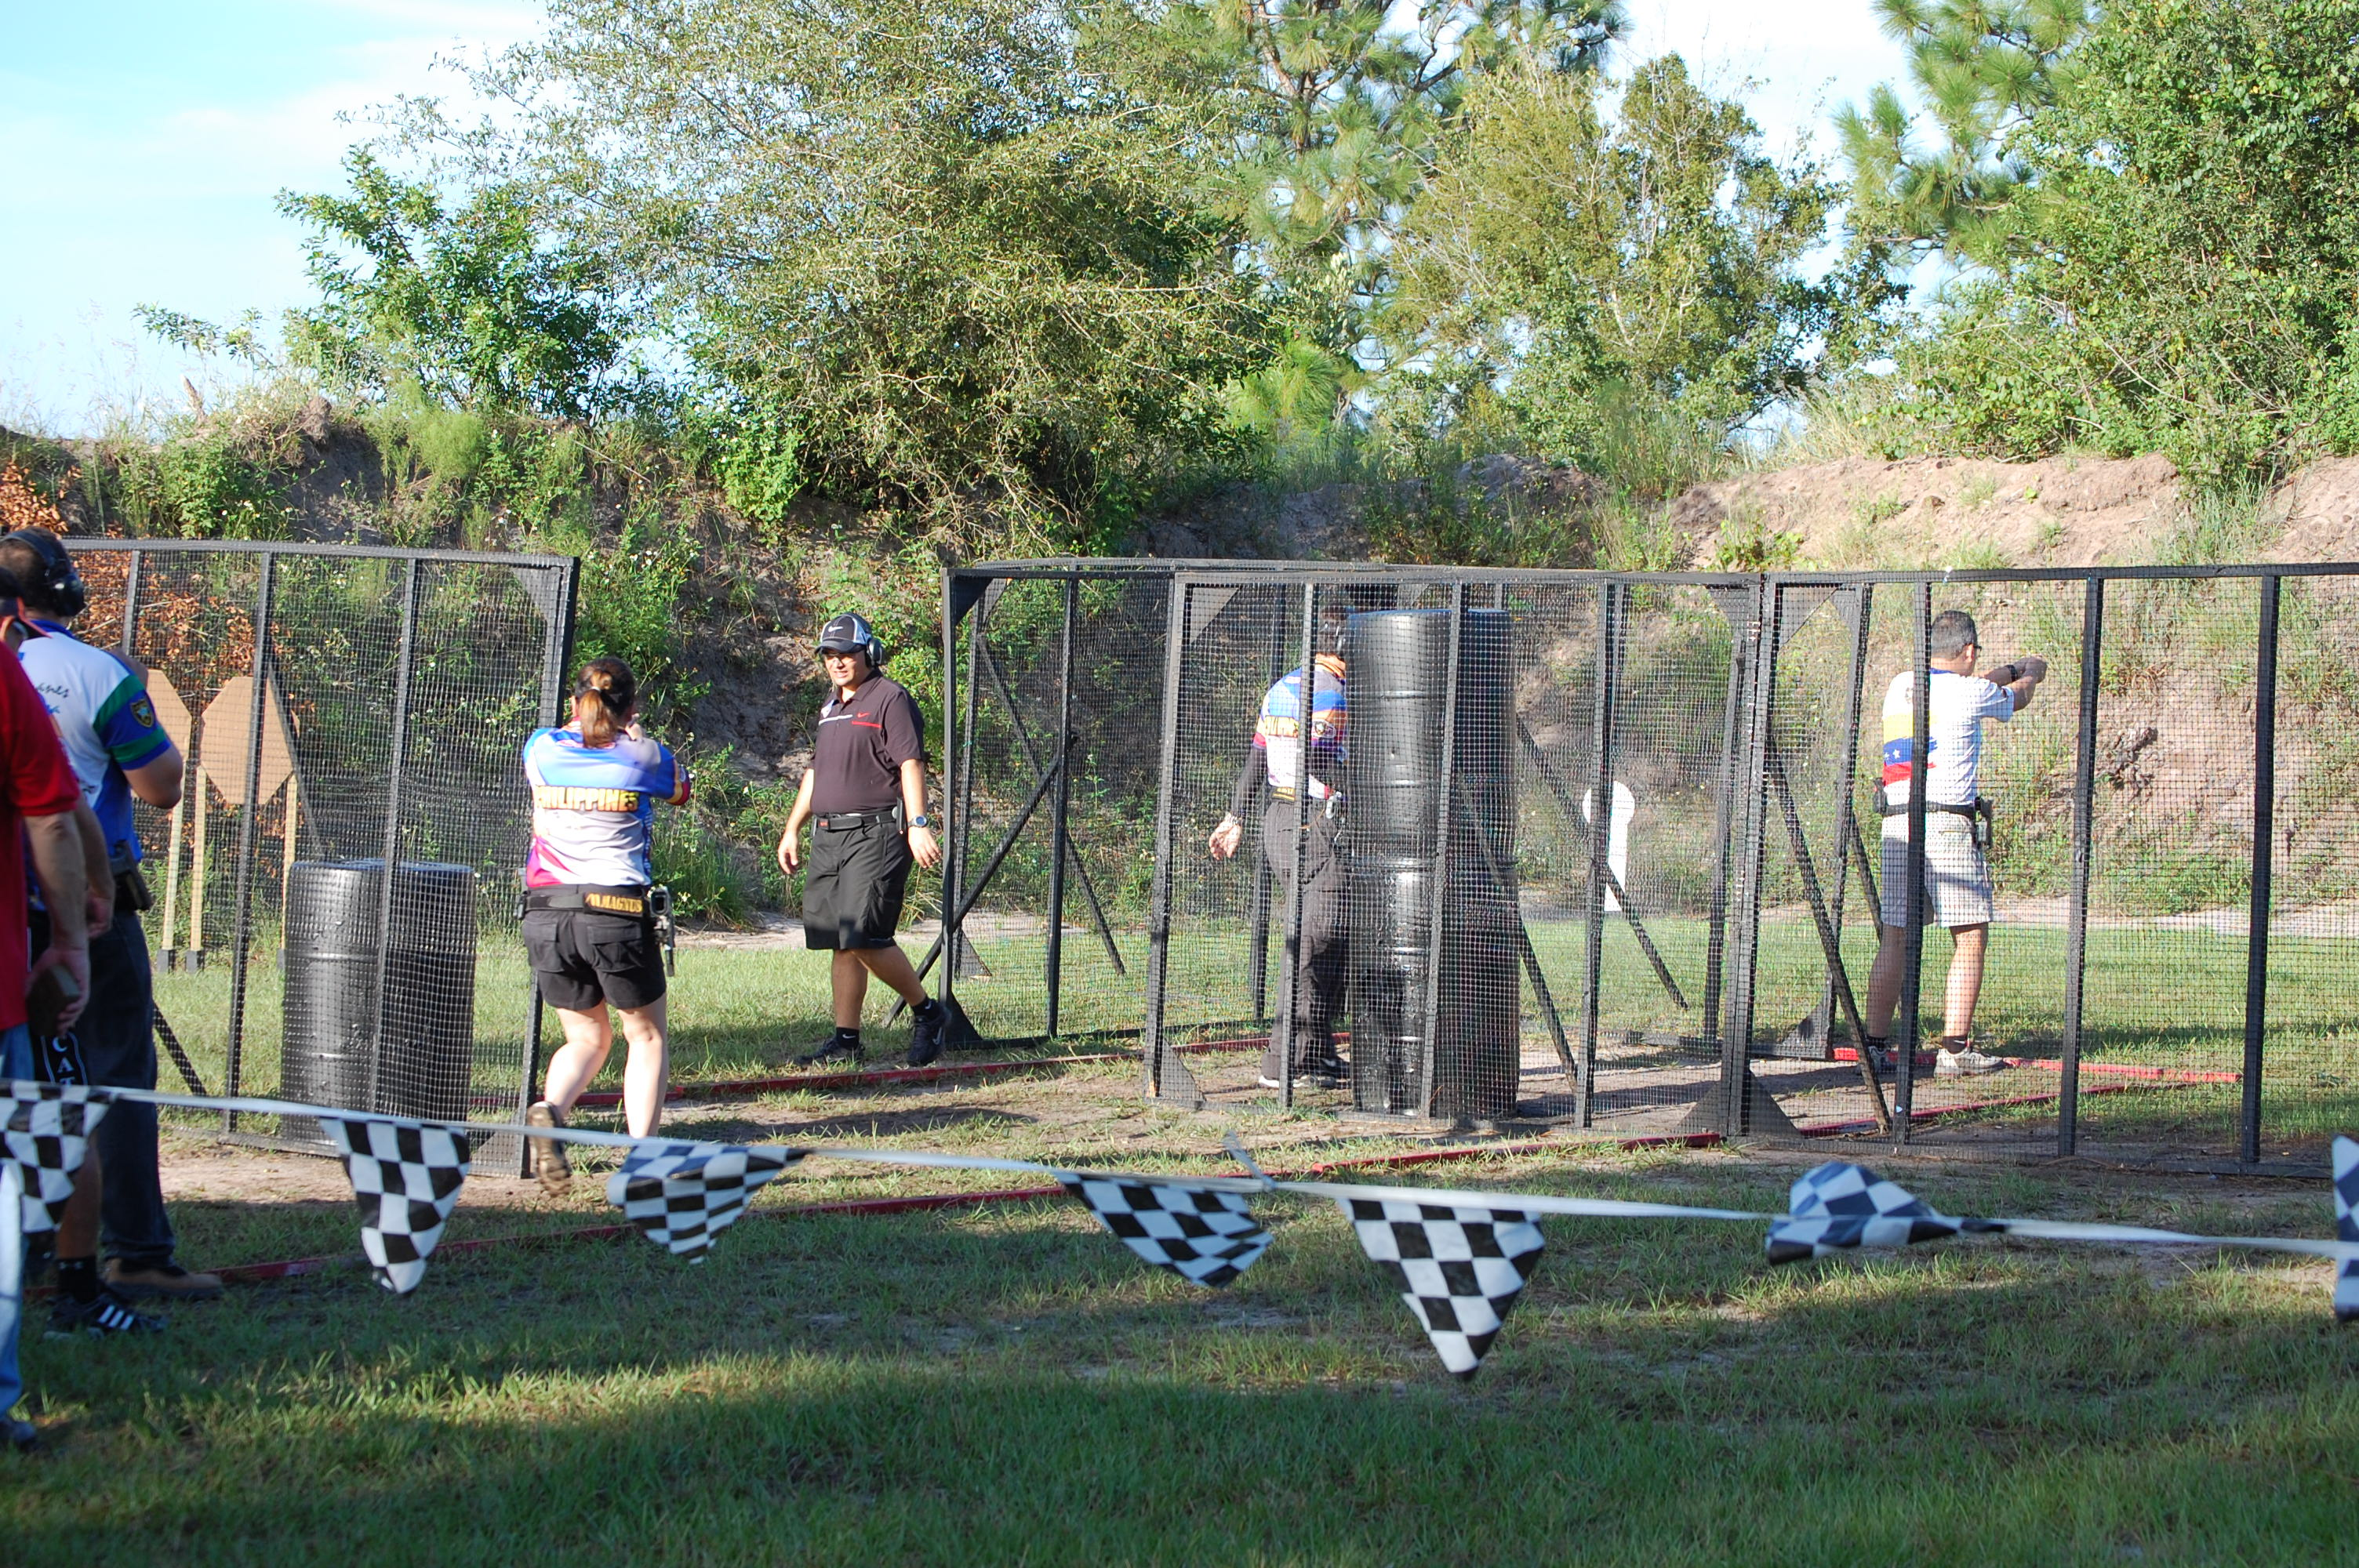 A tournament at Universal Shooting Academy in Frostproof